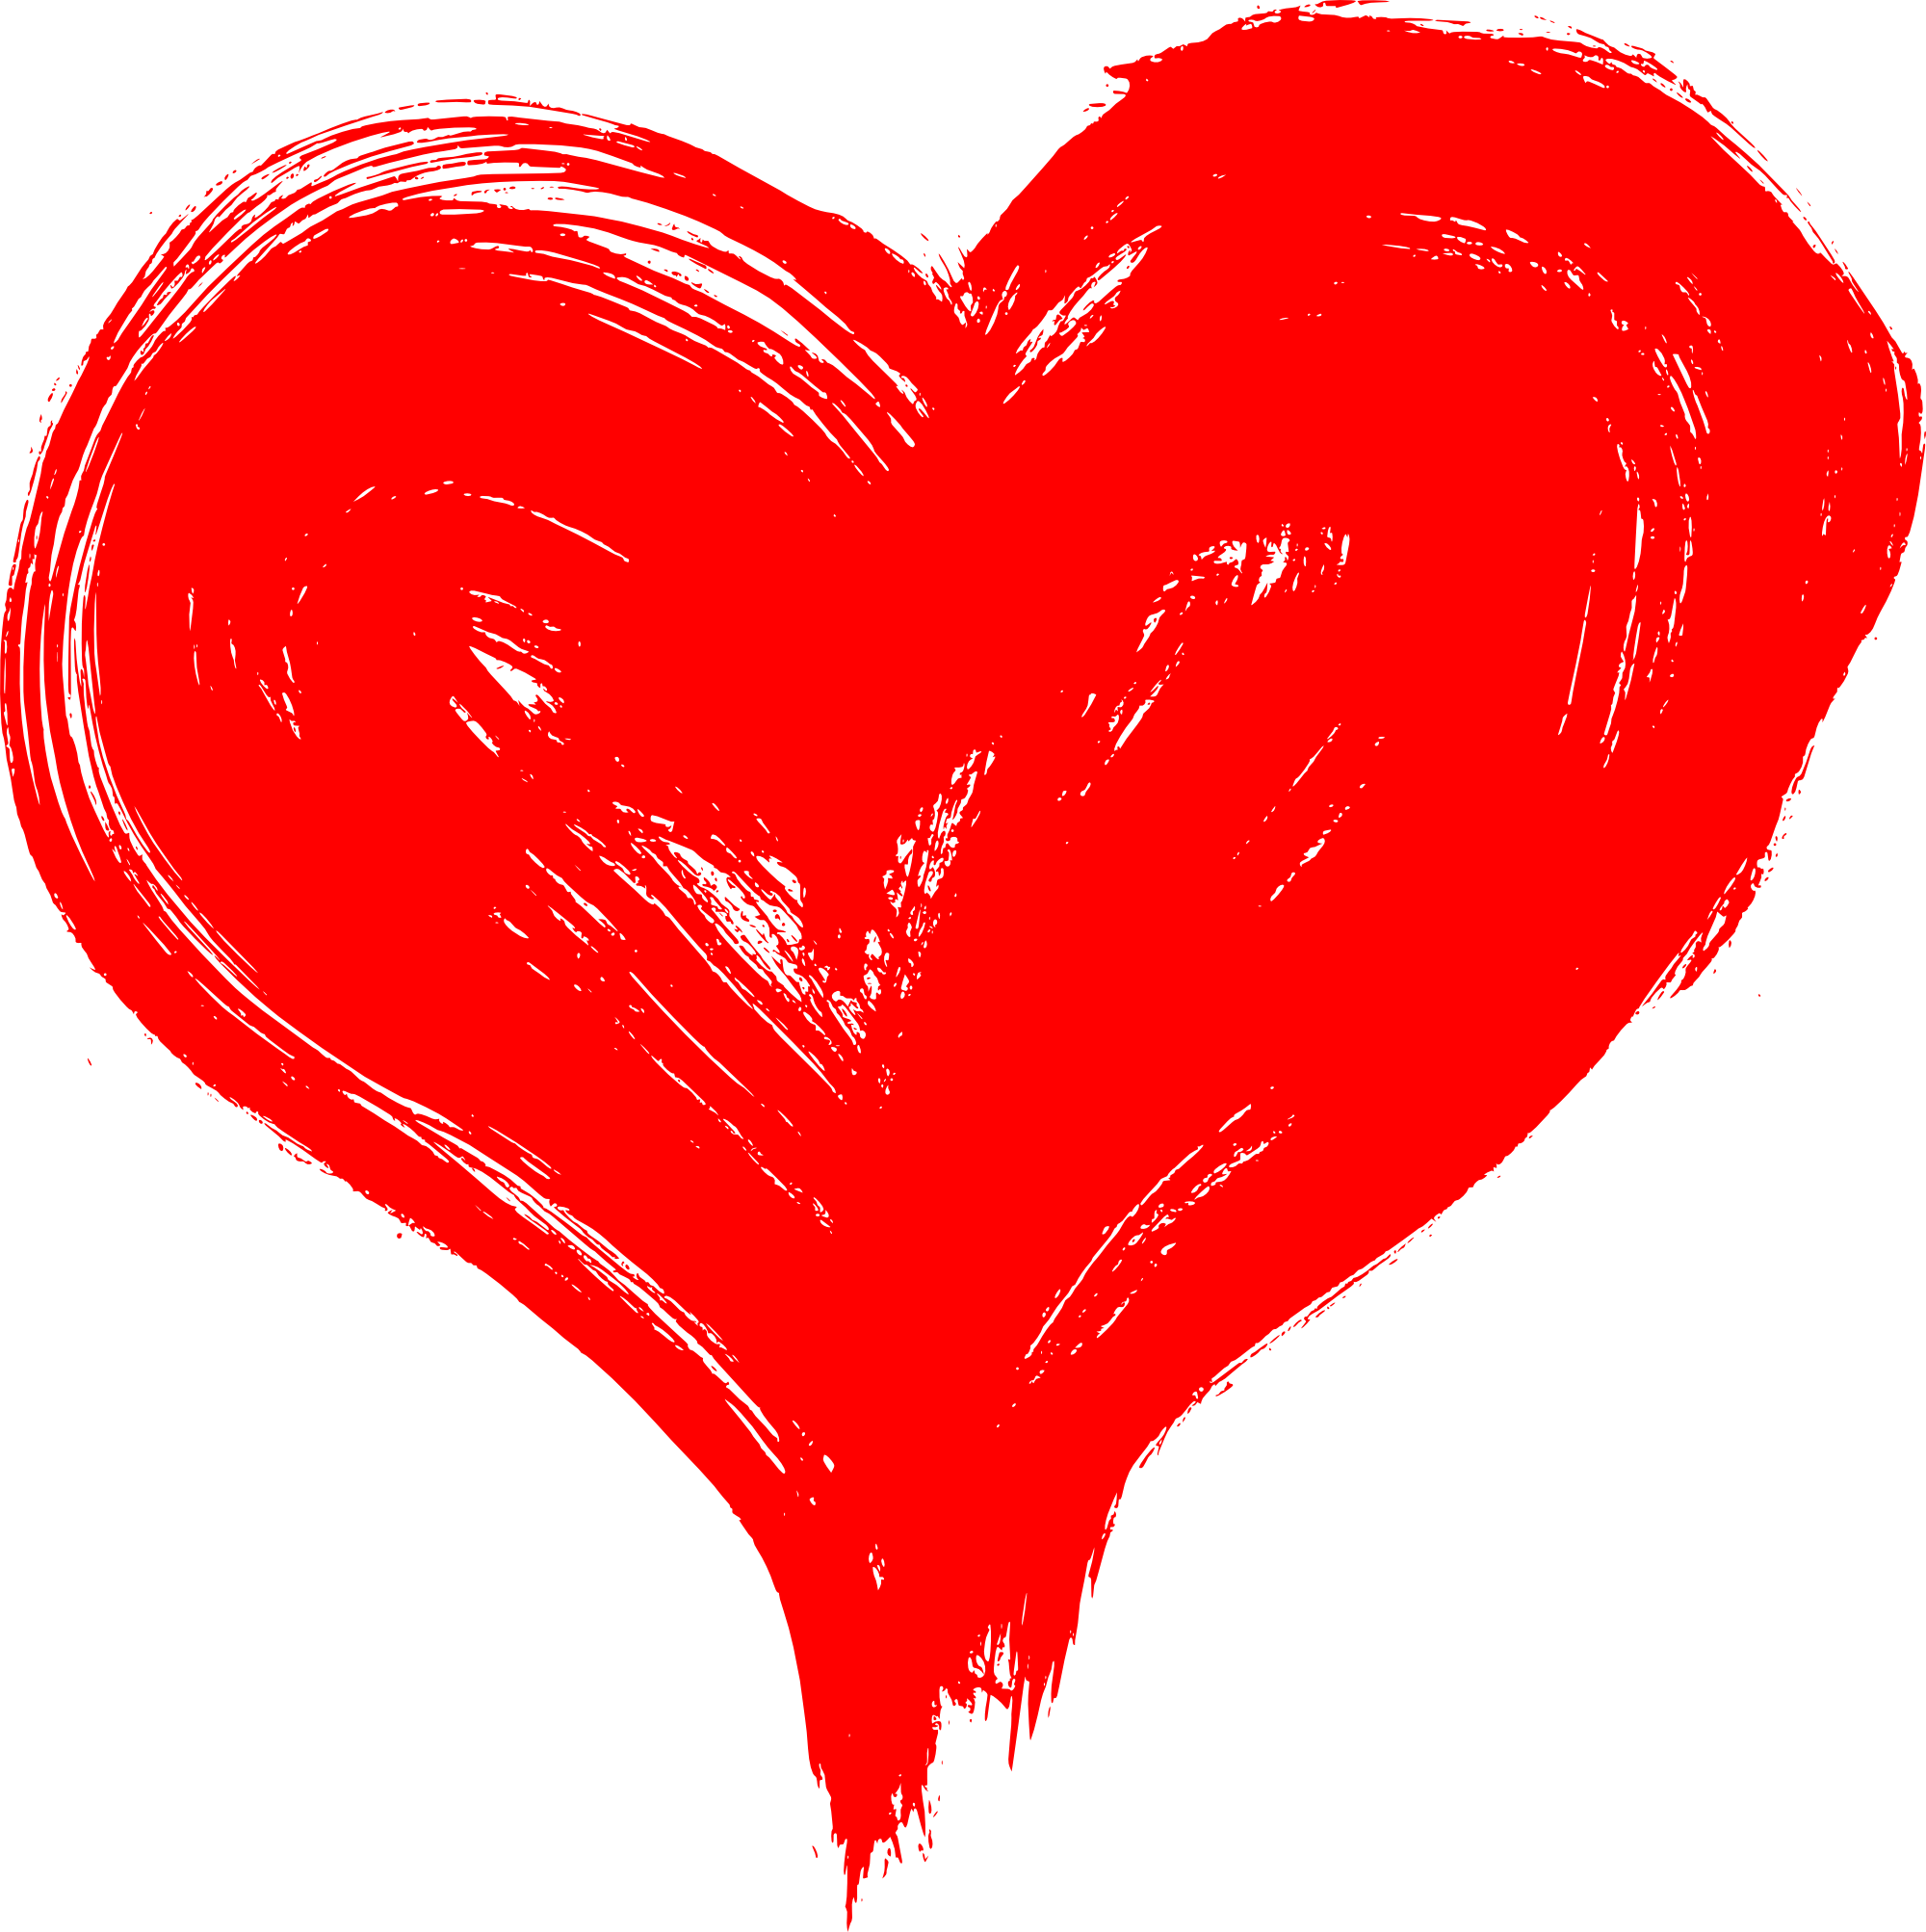 heart-png-17